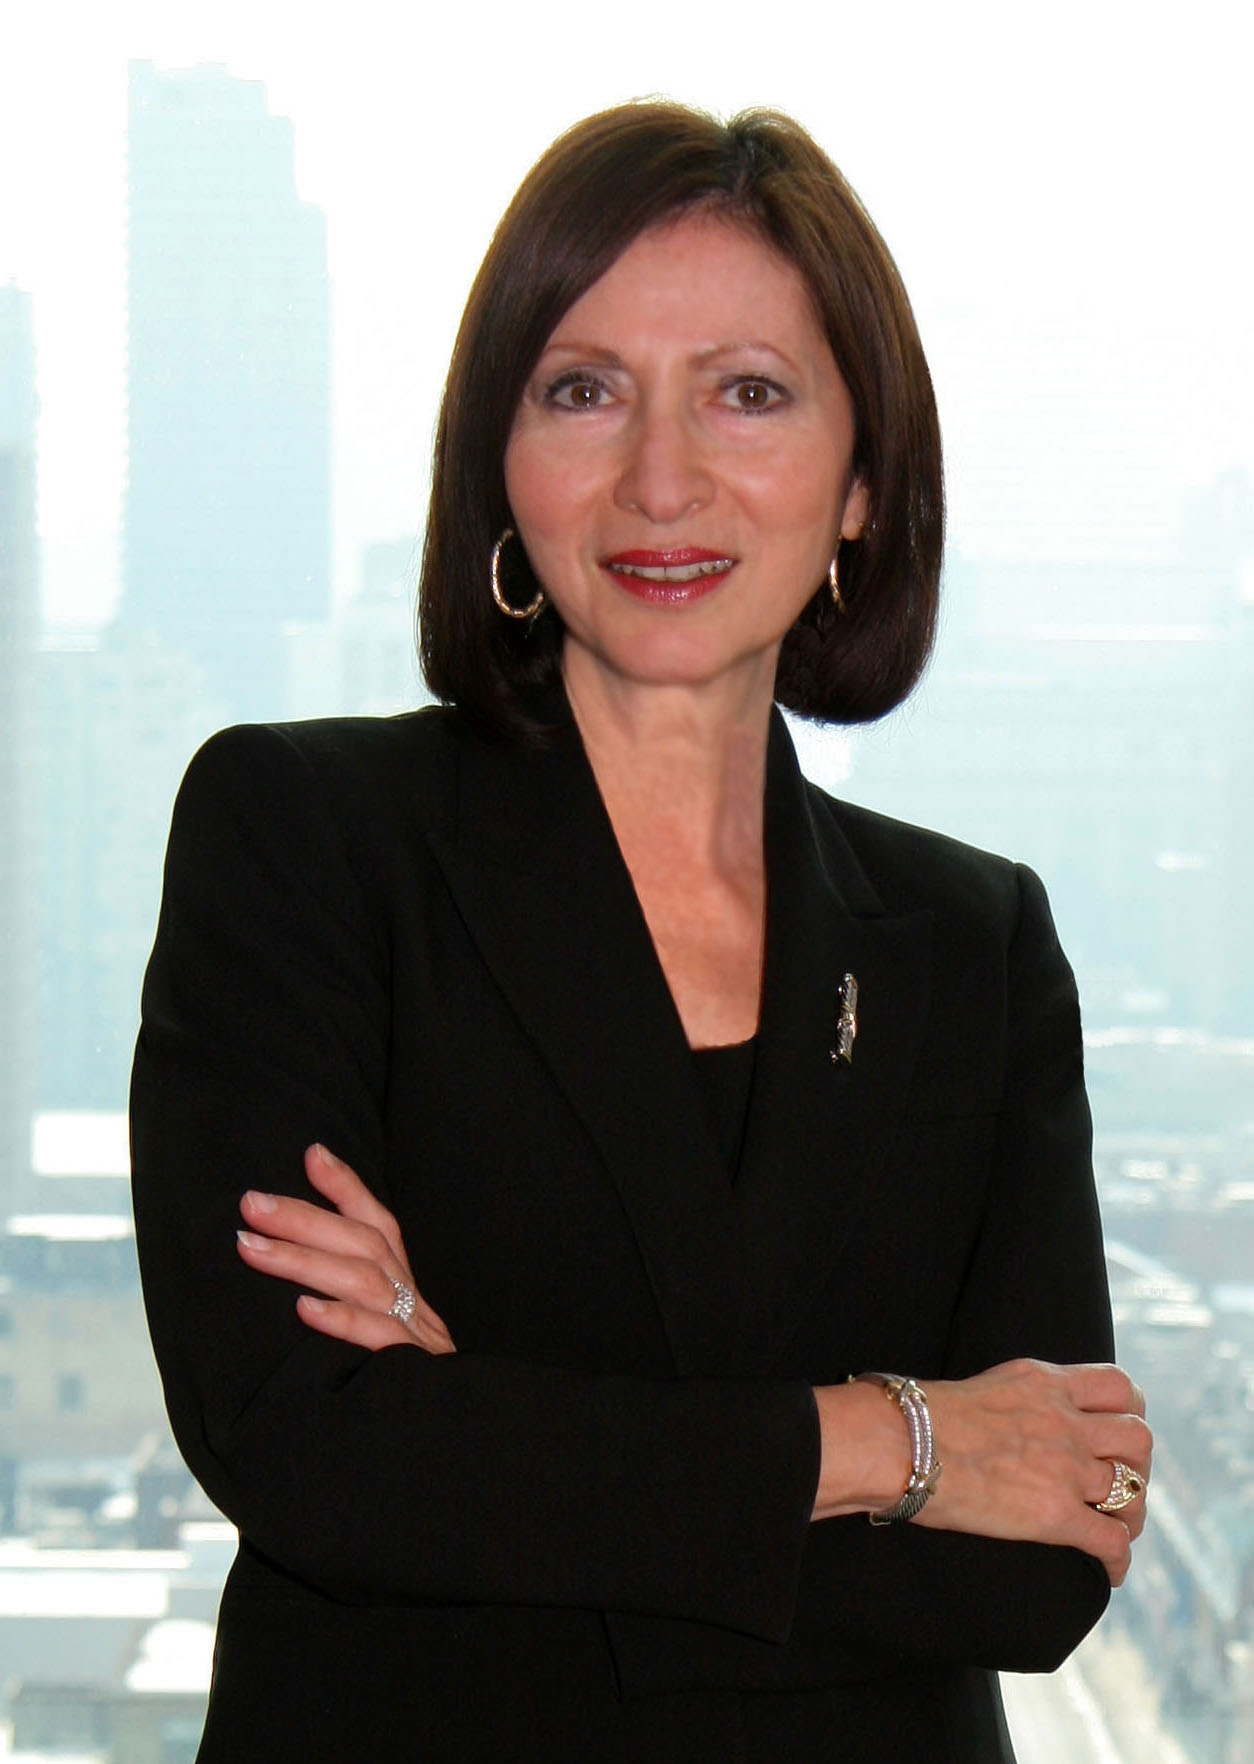 Dr. Ann Cavoukian, Executive Director of the Privacy and Big Data Institute at Ryerson University will present a keynote address on Privacy by Design